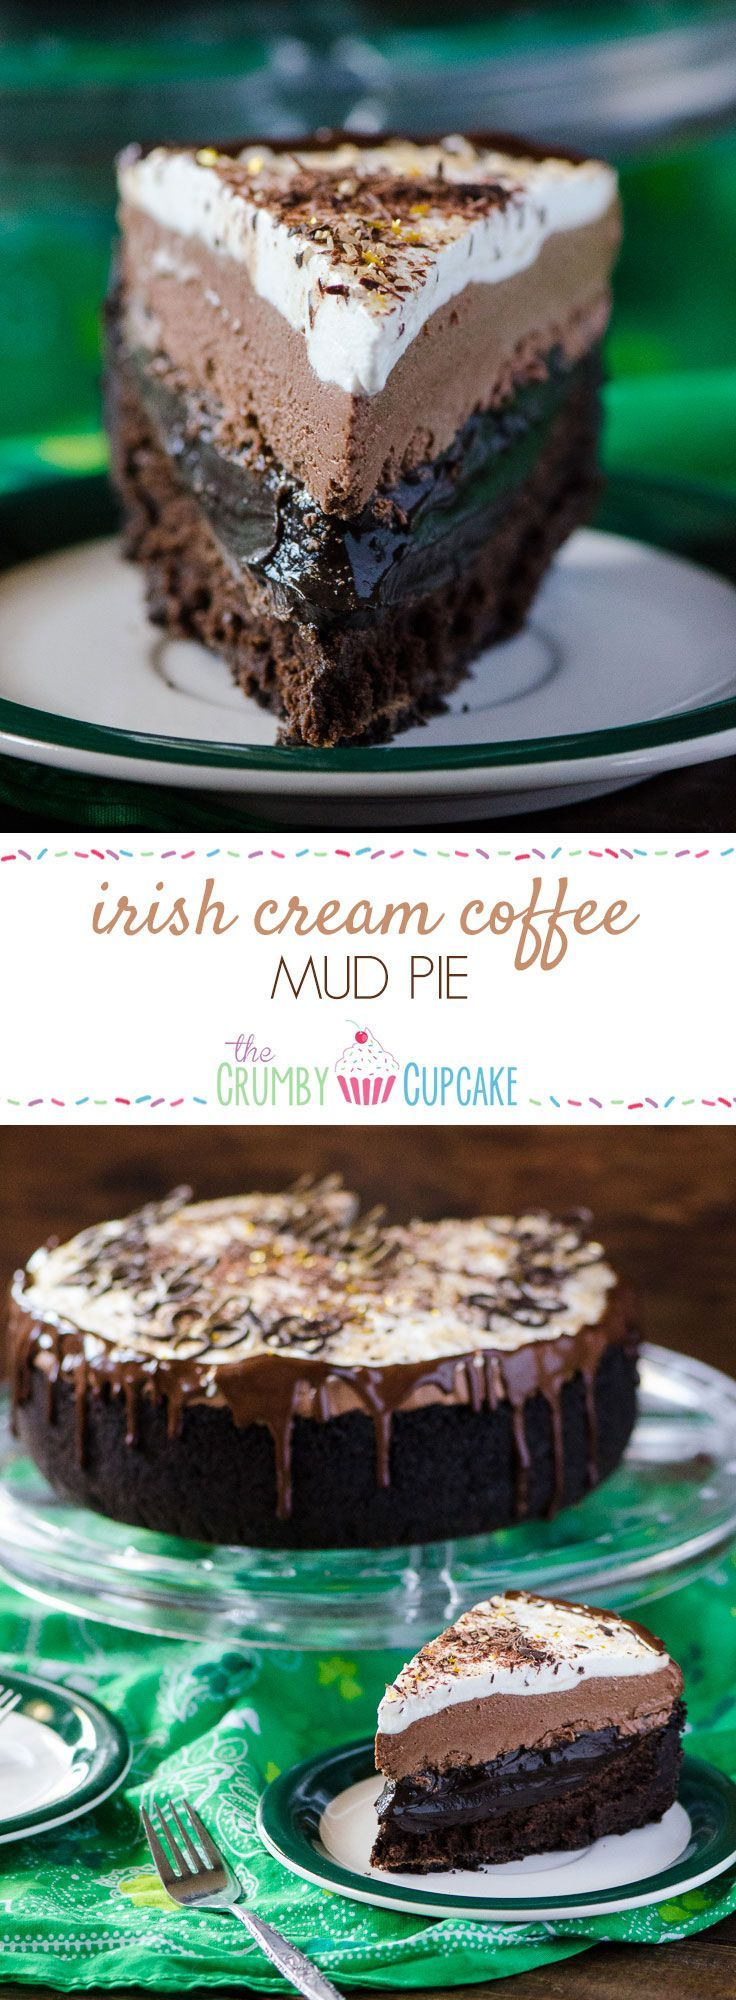 Coffee turned into pie? Chocolate cookie crust, a flourless chocolate whiskey cake, a layer of chocolate espresso pudding, an Irish cream chocolate mousse, topped off with a sweet whipped cream - it's a chocoholic's dream!